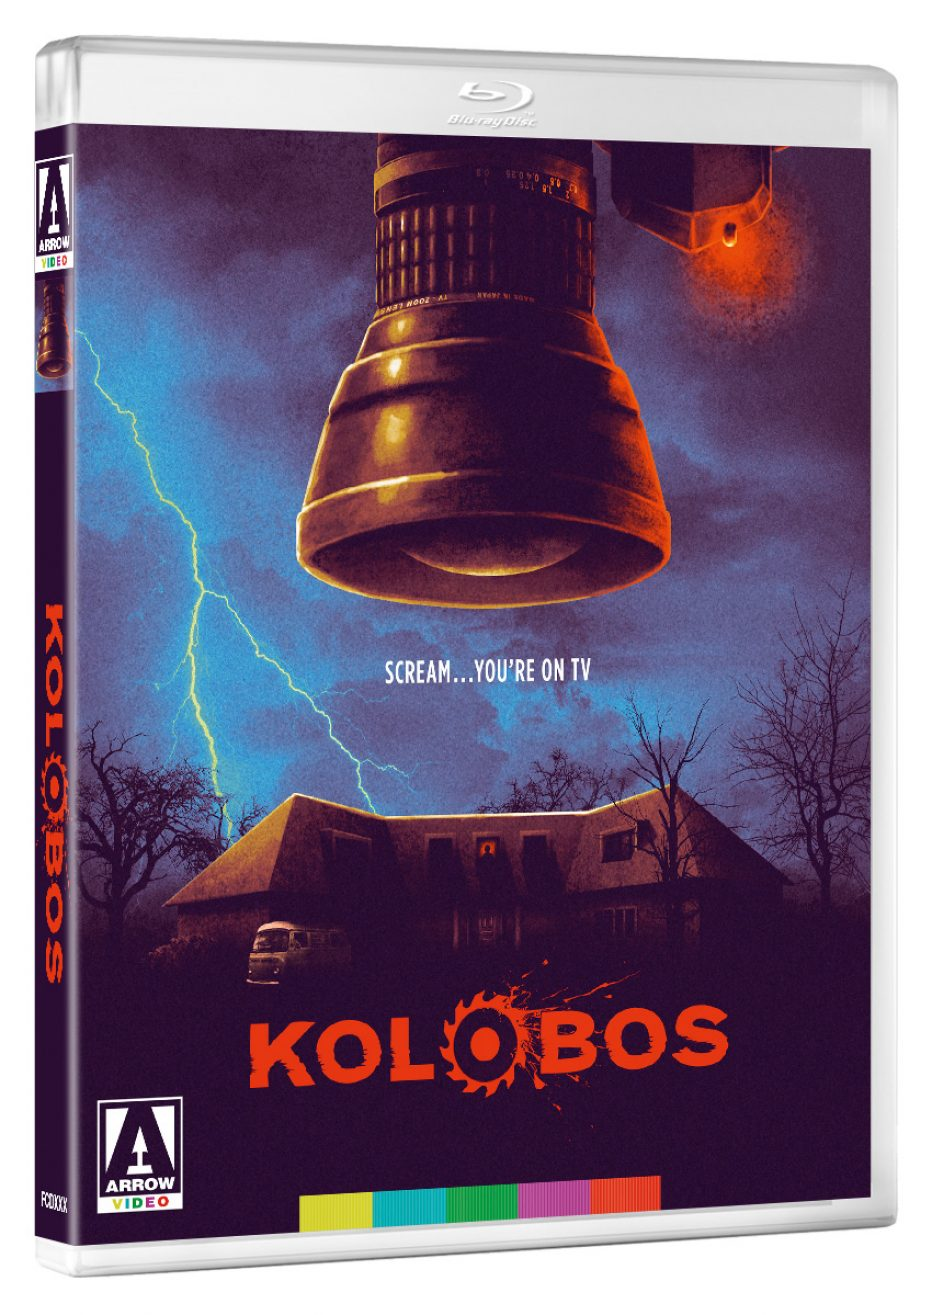 Kolobos On Blu-ray from 11 March 2019